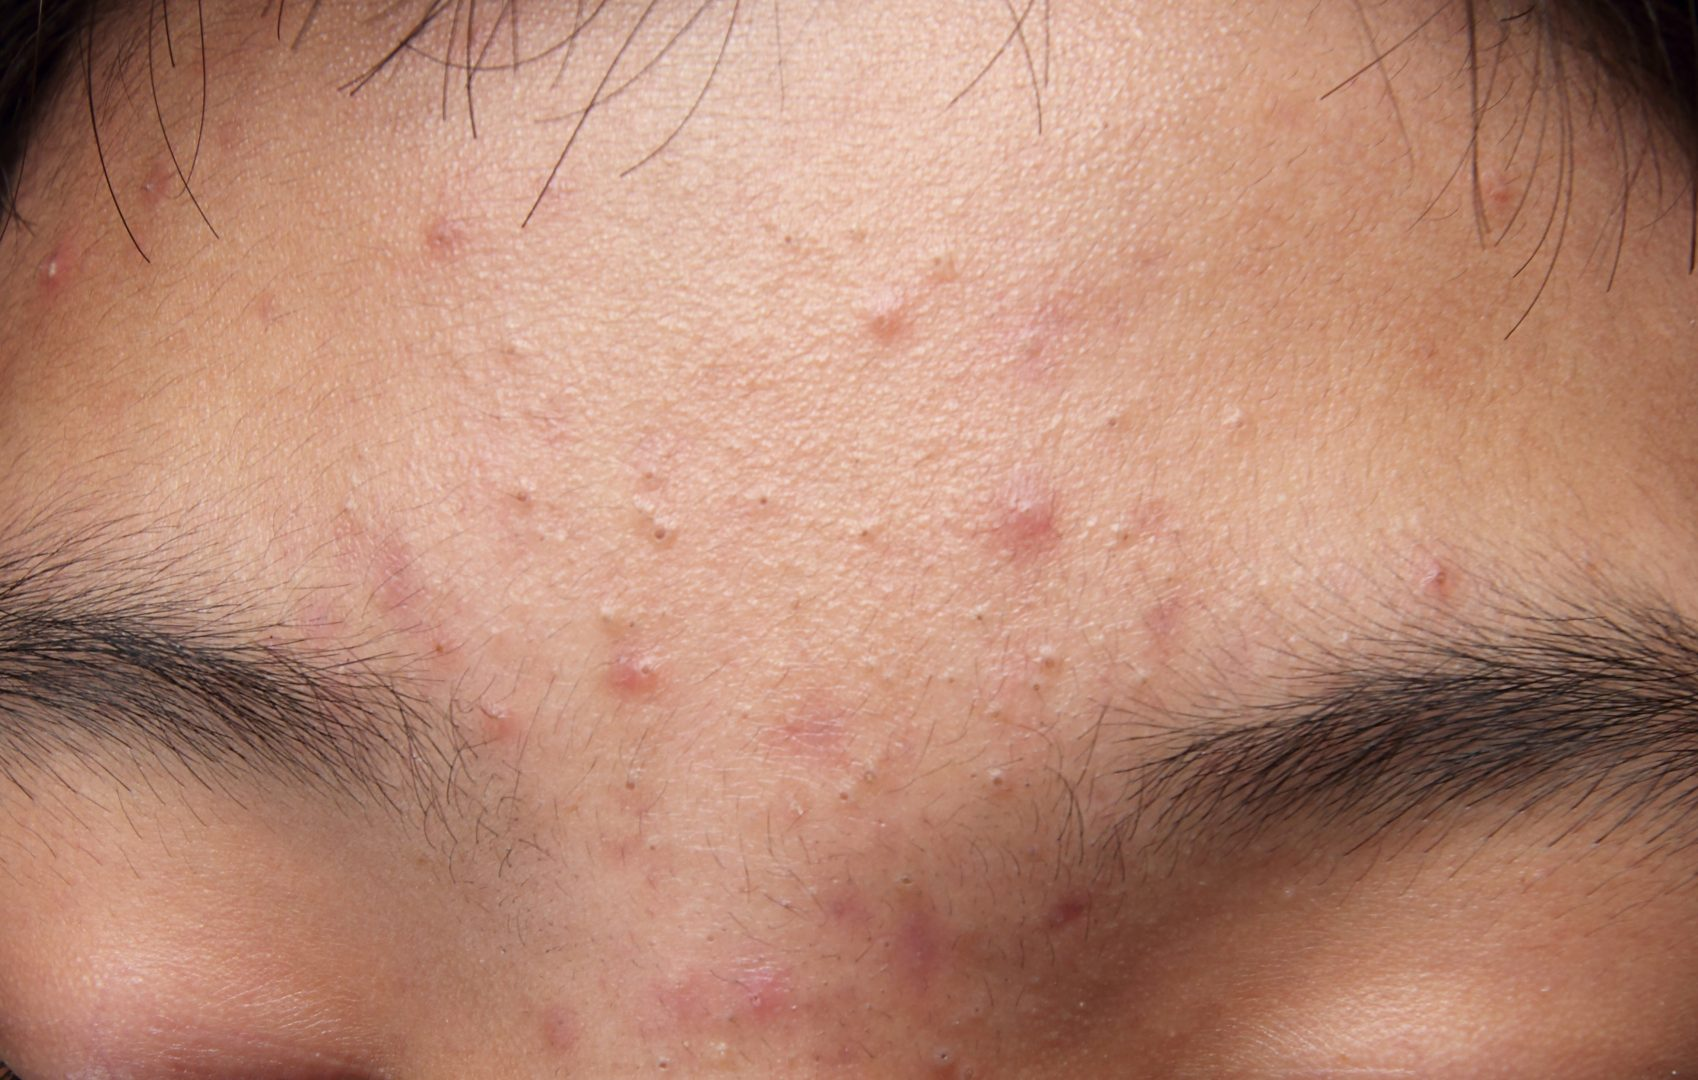 Is acne besmettelijk?